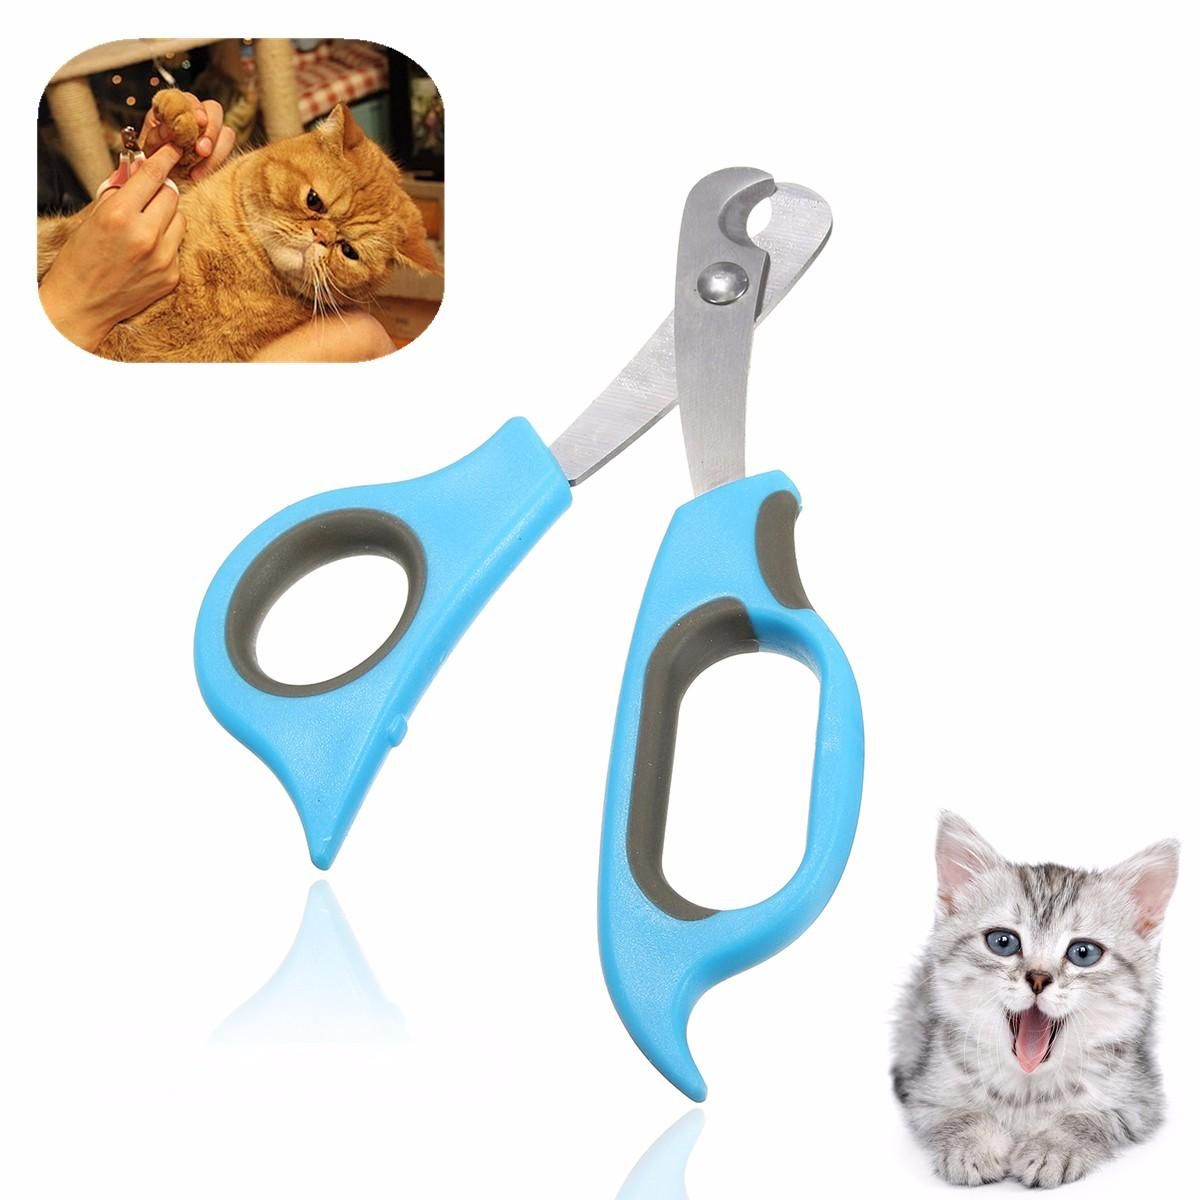 Us 4 42 26 Pet Dog Cat Rabbit Nail Clippers Trimmers Toe Paw Claw Grooming Scissors Cutter Pet Supplies From Home And Garden On Banggood Com Rabbit Nail Clippers Cat Grooming Pet Dogs